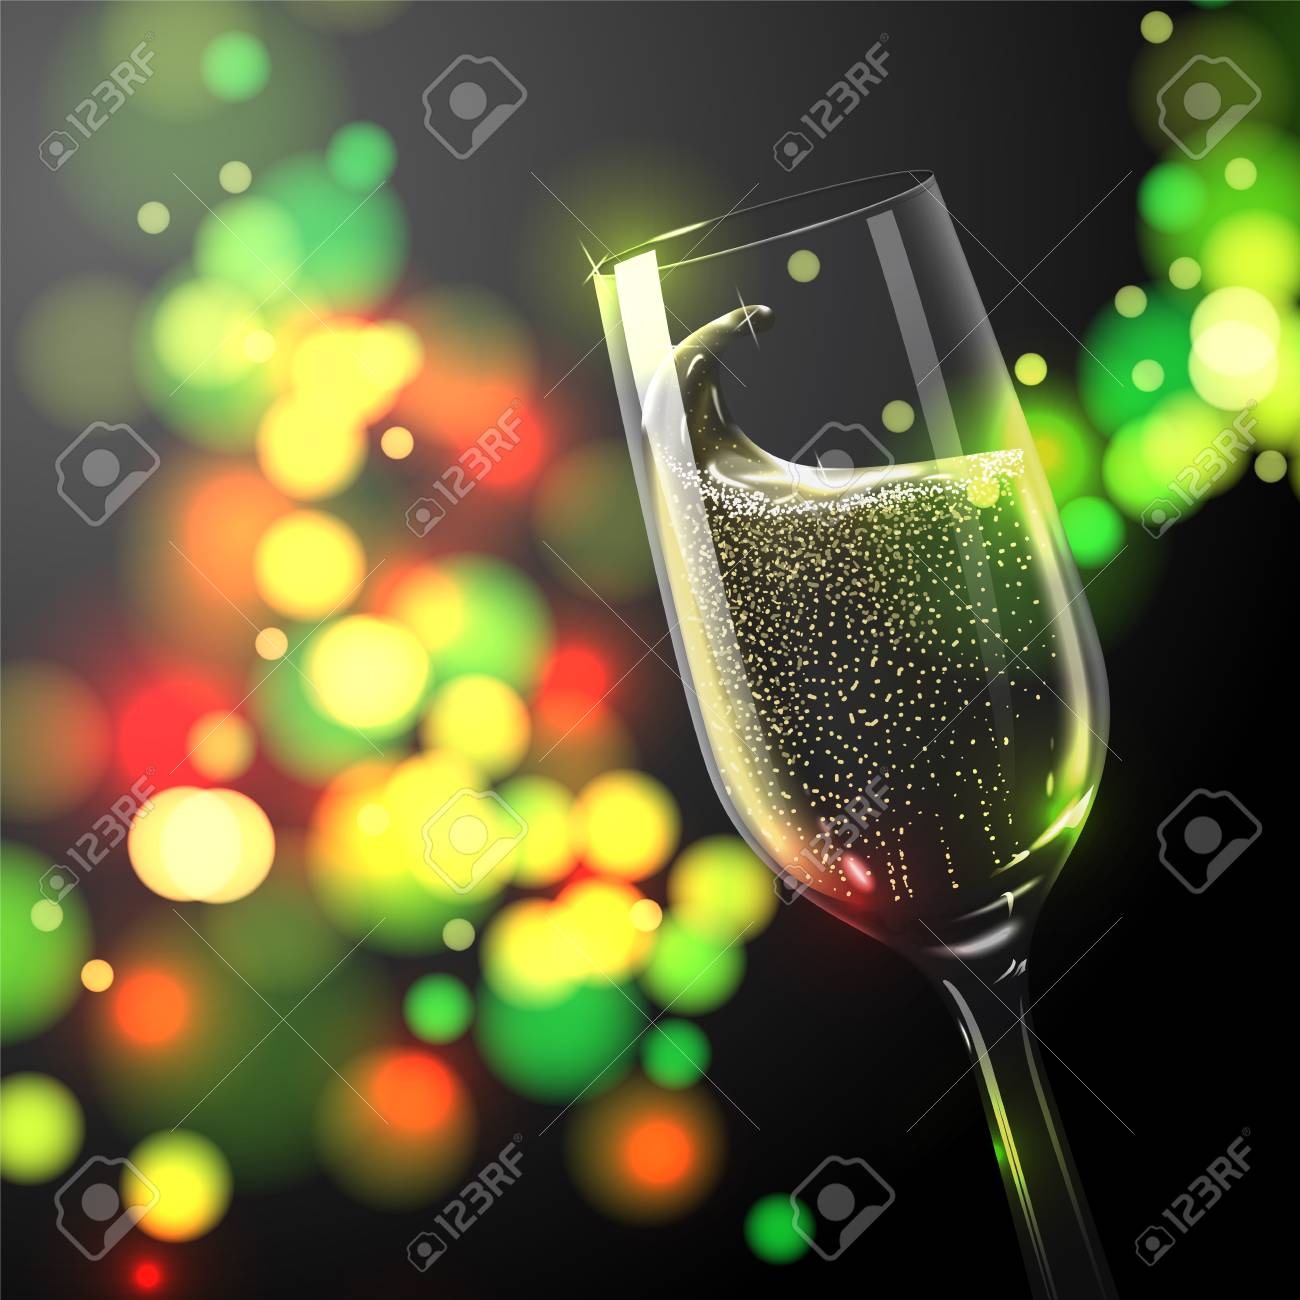 vector vector new year banner template with place for your text transparent champagne glass on bright background with blurred xmas tree